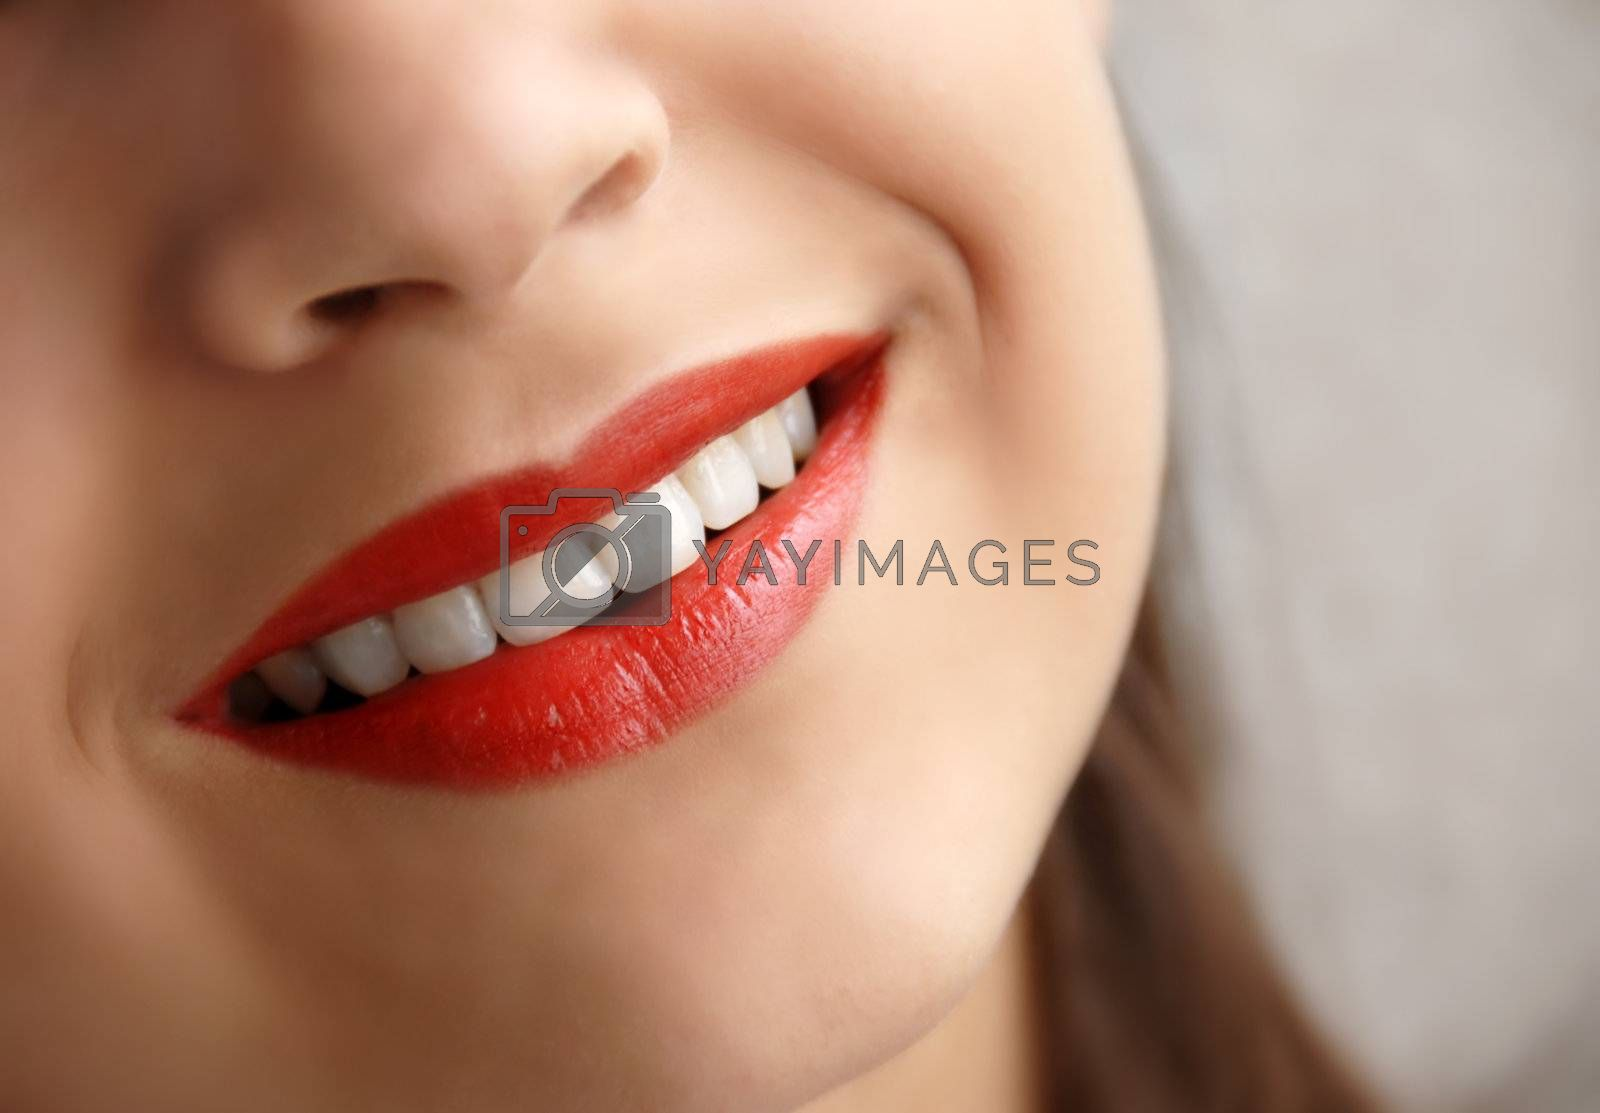 Royalty free image of Young girl smile by simply